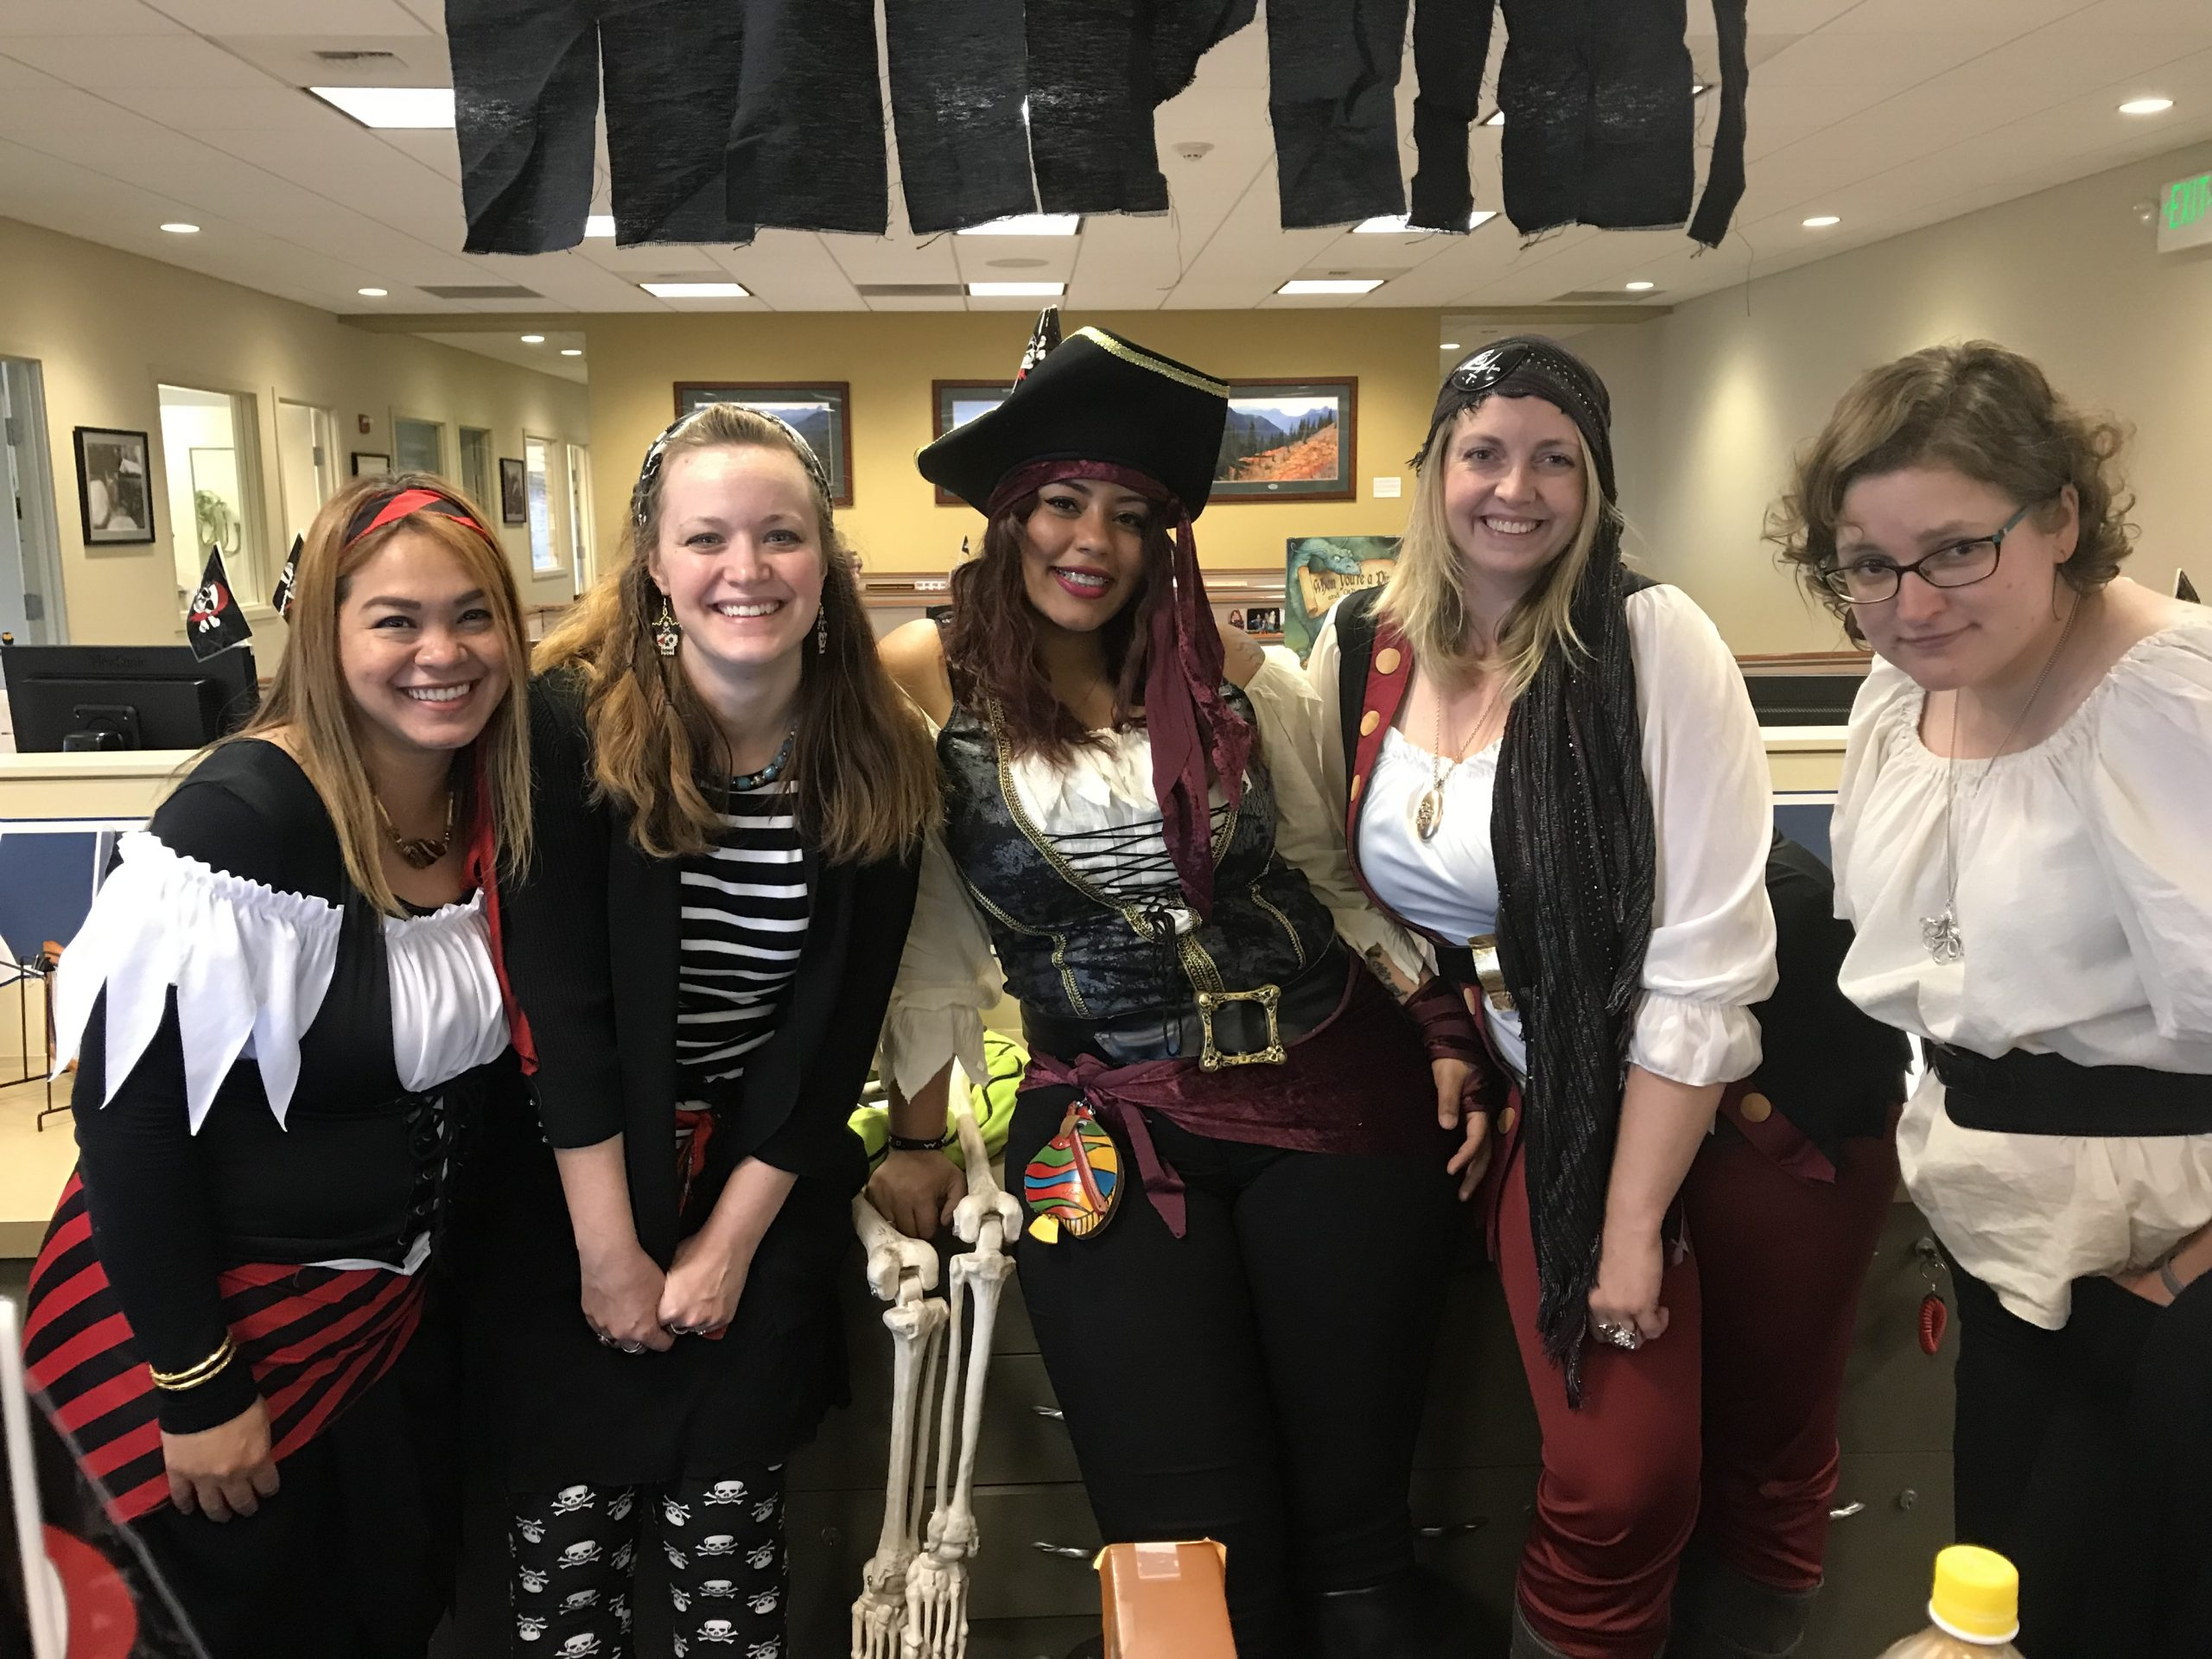 Staff dressed like pirates